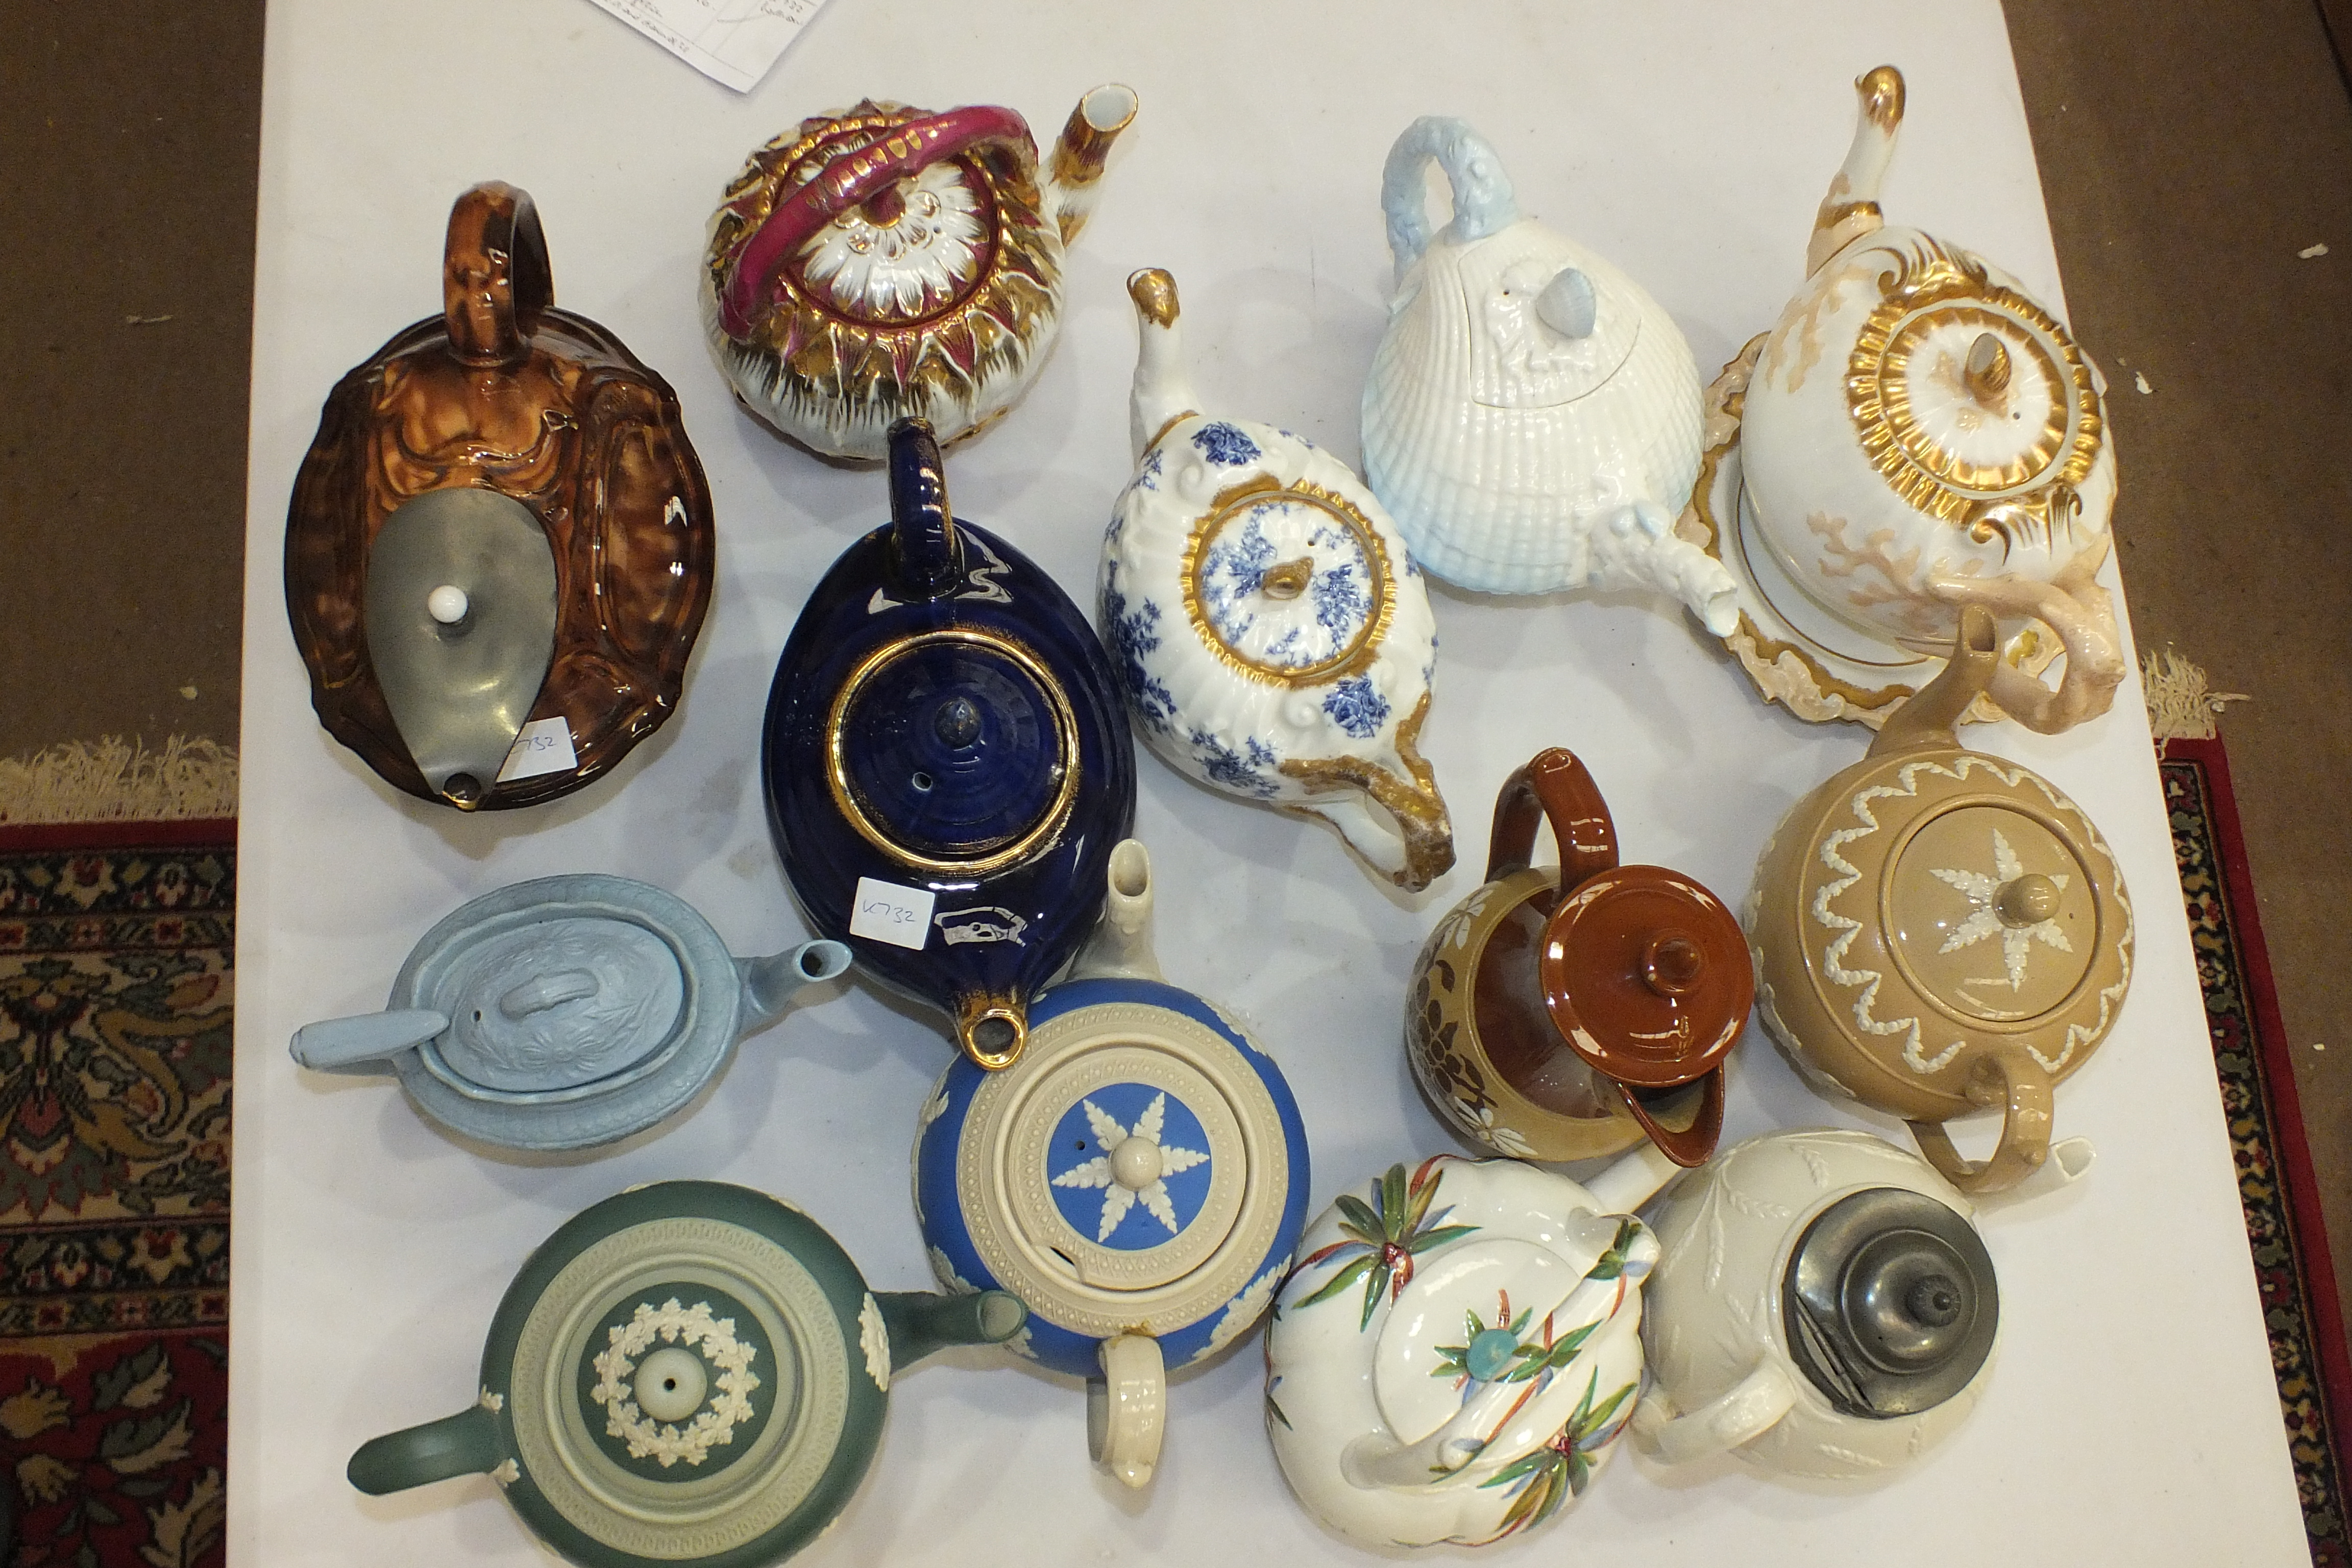 Lot 113 - A William Brownfield & Sons novelty teapot in the form of a cockle shell, with finialled lid,